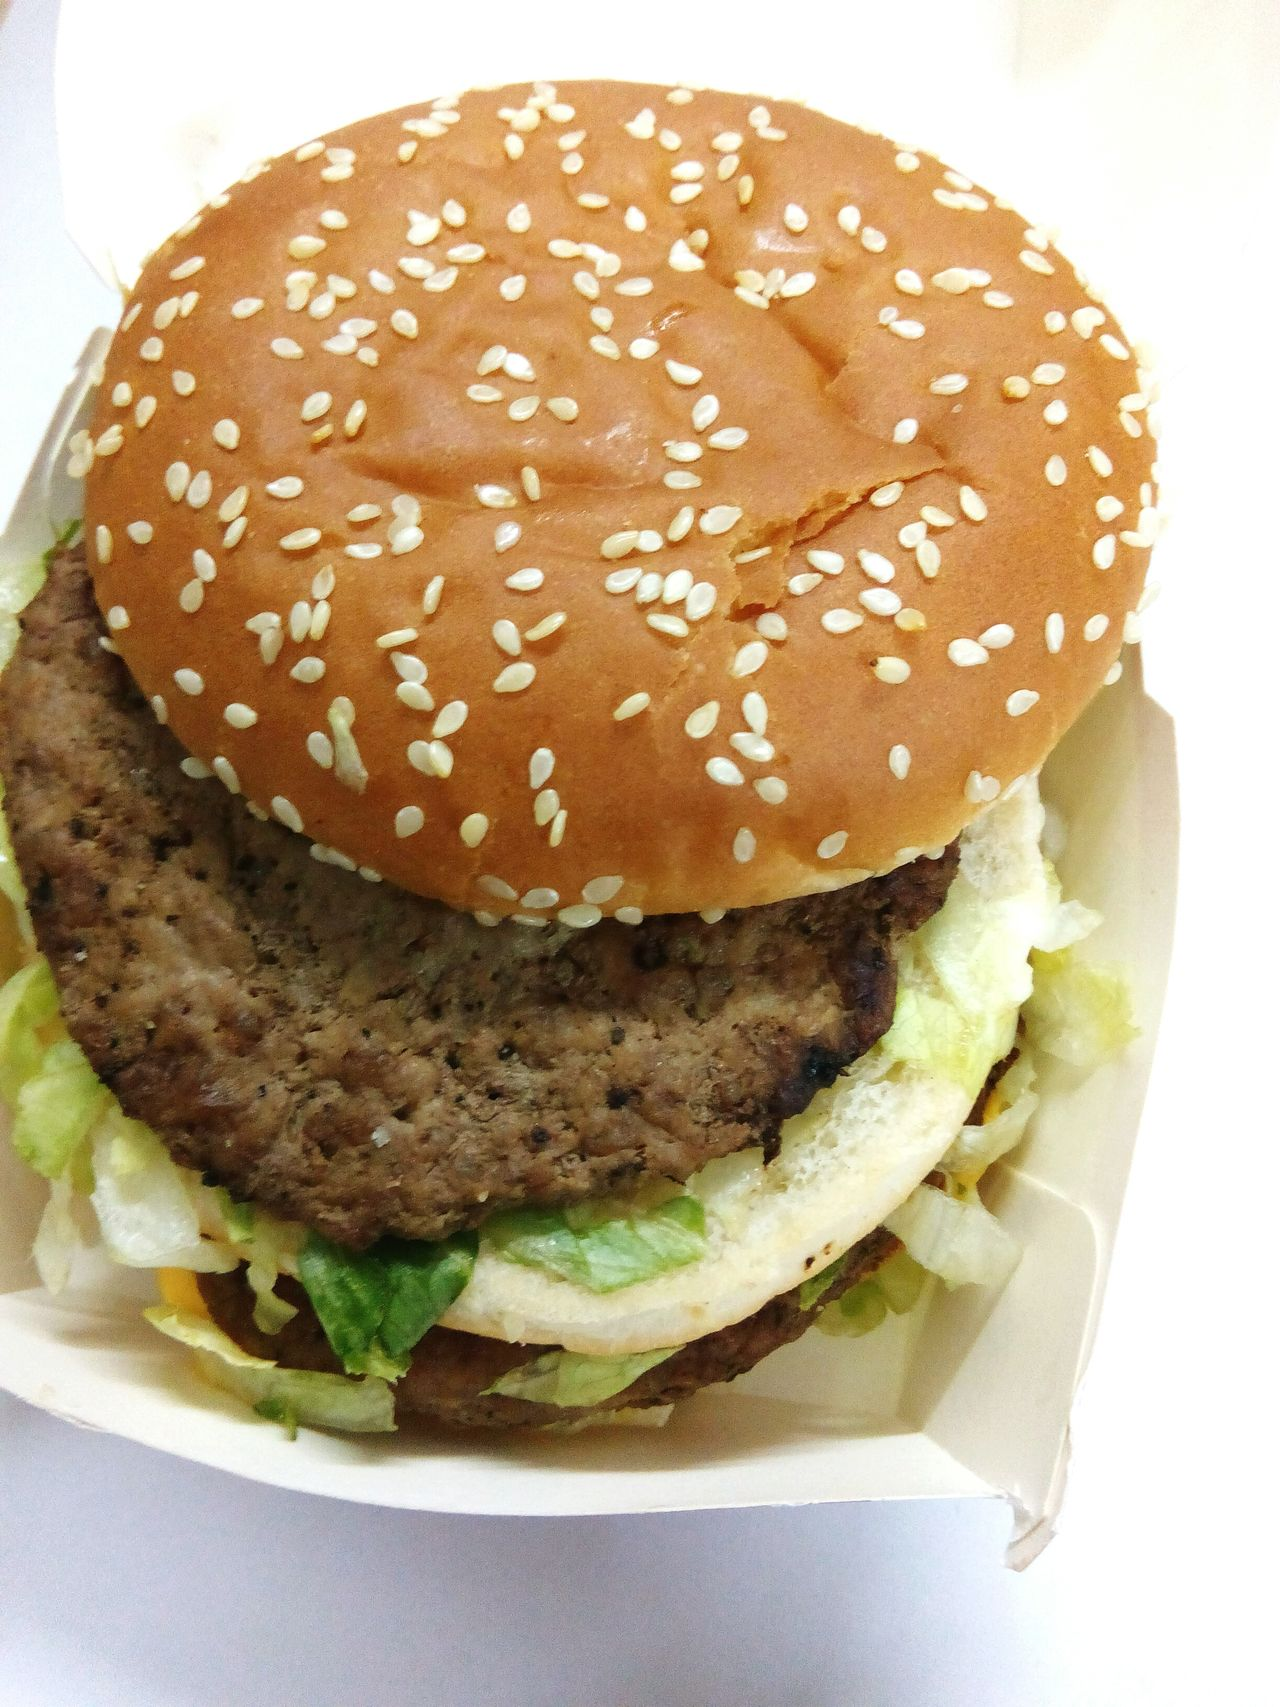 Burger Hamburger Bun Unhealthy Eating No People Freshness Food And Drink Fast Food Plate Food Close-up Sesame Indoors  Ready-to-eat Day